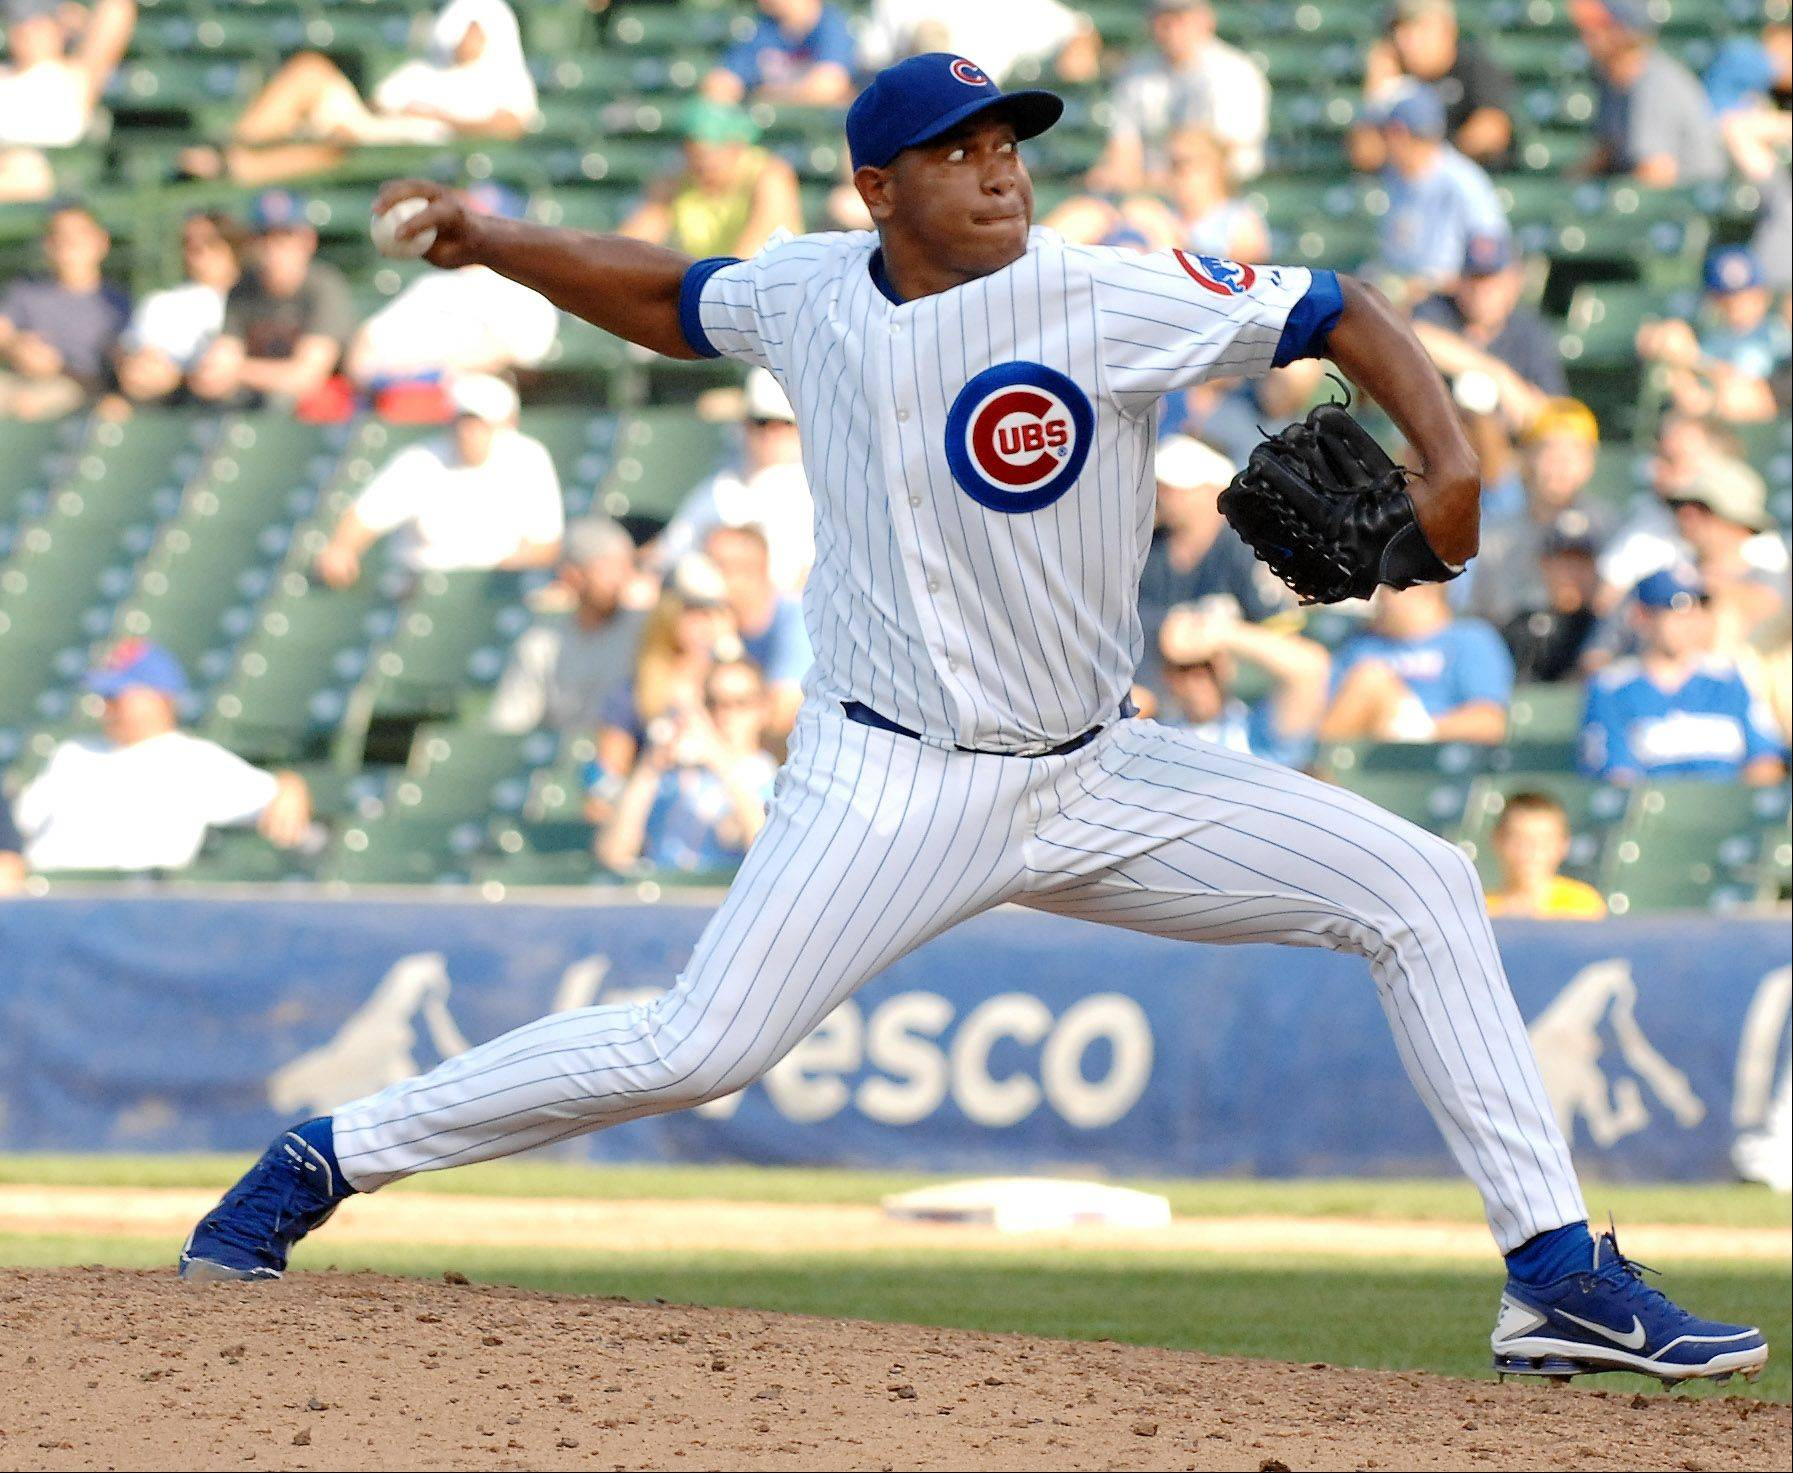 Chicago Cubs relief pitcher Carlos Marmol delivers a pitch in the top of the ninth.